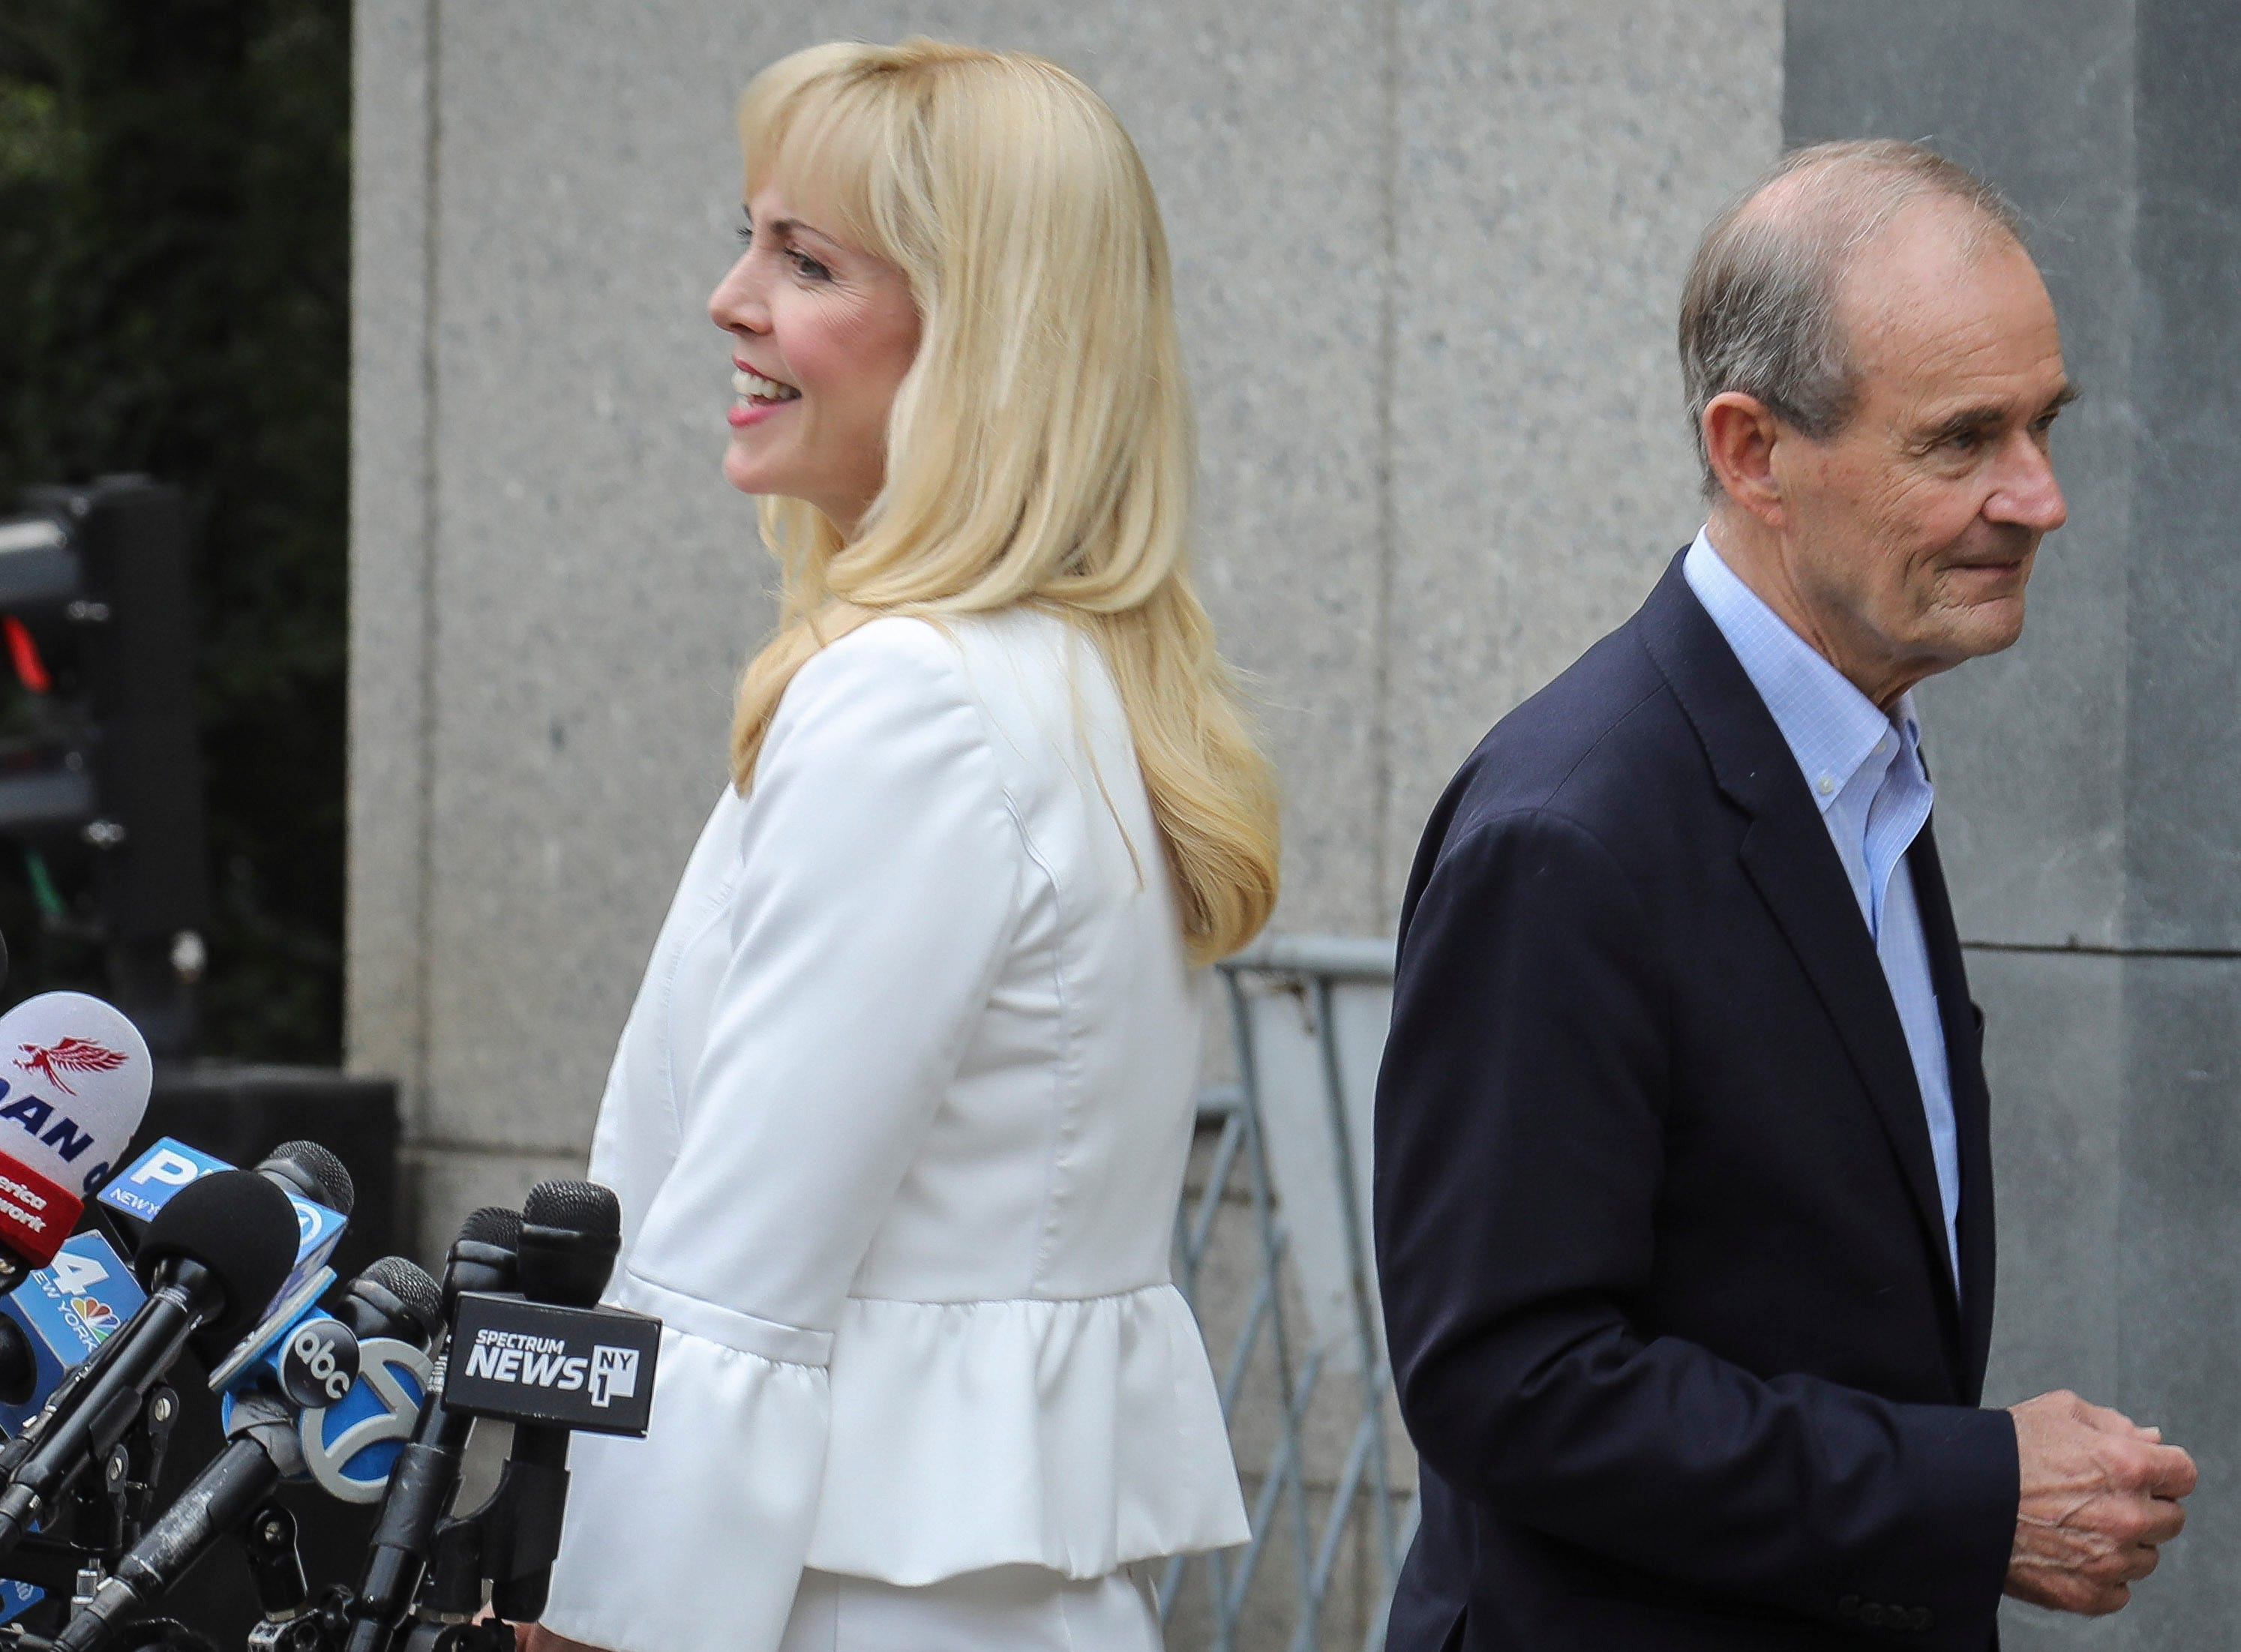 Andrea Prince Sex jeffrey epstein: prince andrew photo reappears in sex